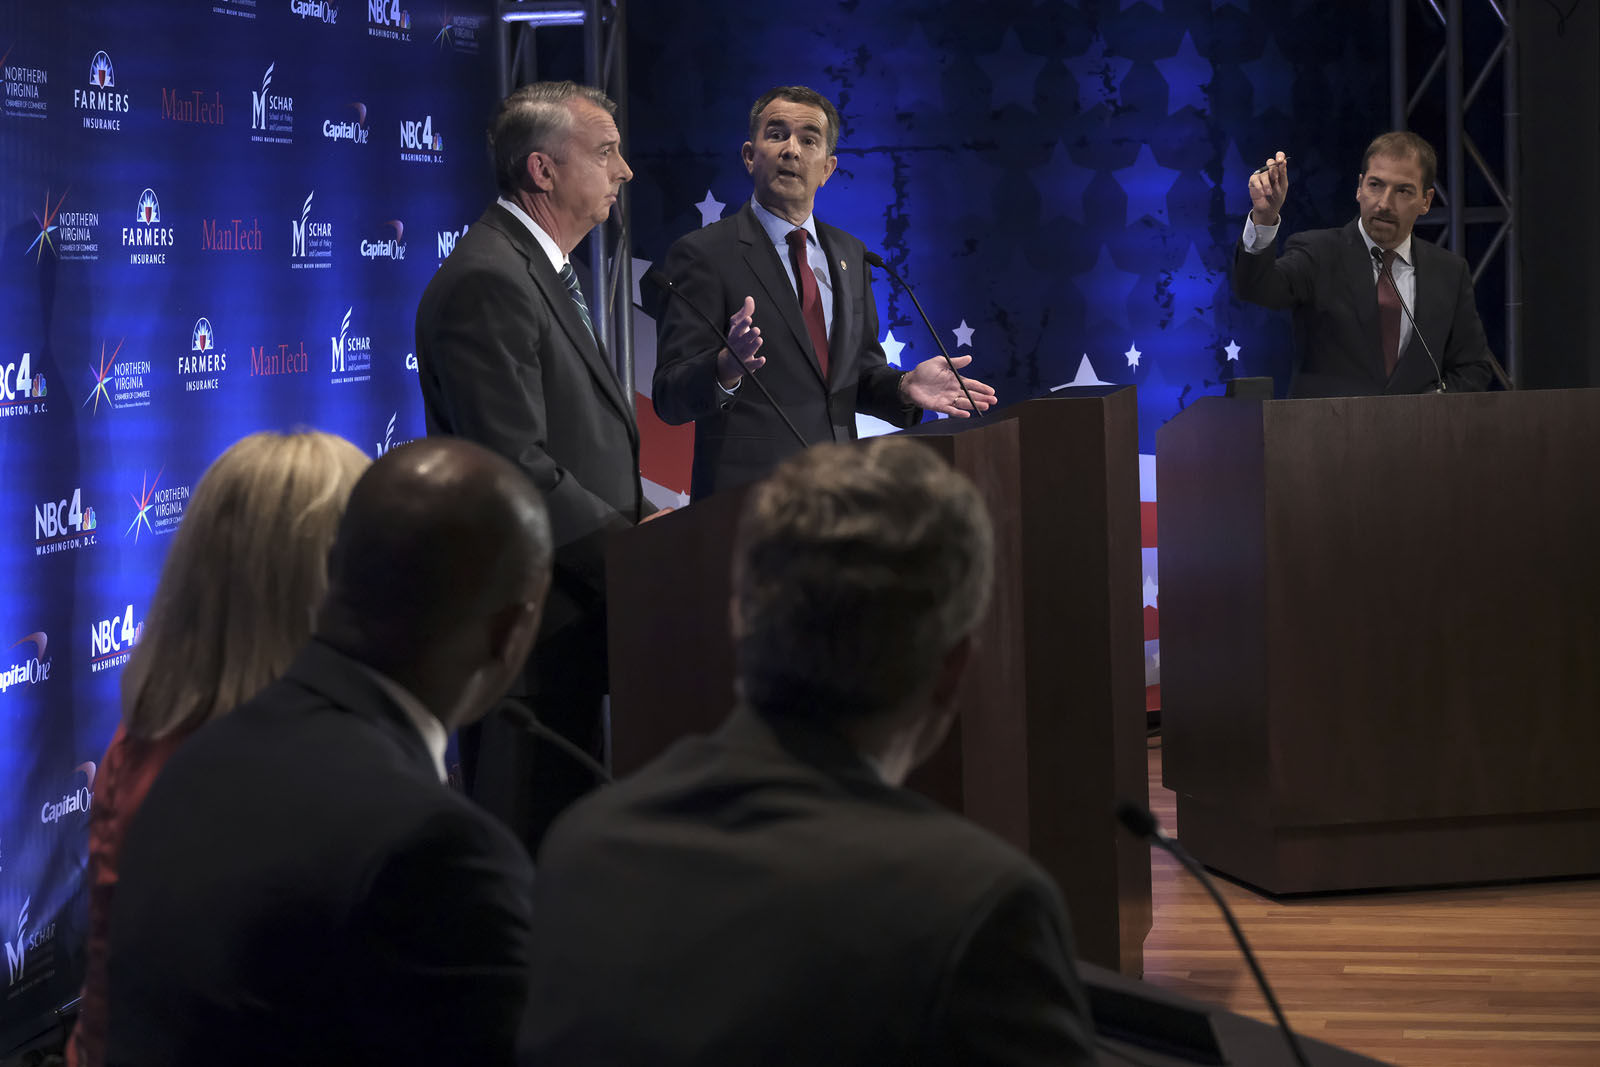 WASHINGTON , DC - SEPTEMBER 19: Moderator Chuck Todd, right, motions for time during the gubernatorial debate between Ed Gillespie, left, and Lt. Gov. Ralph Northam in Washington, DC on September 19, 2017. (Pool Photo by Bonnie Jo Mount/The Washington Post)